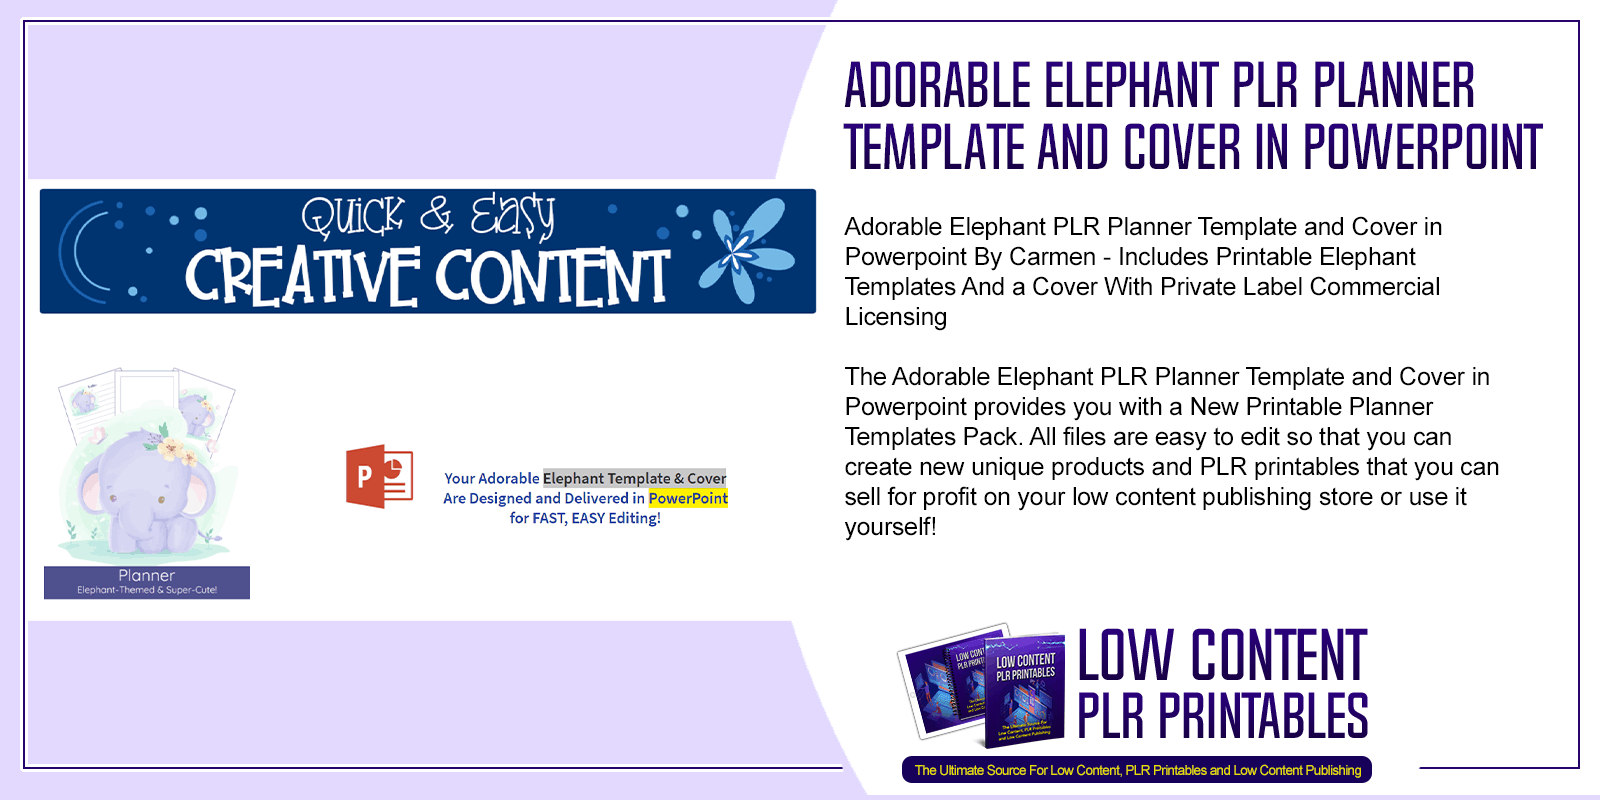 Adorable Elephant PLR Planner Template and Cover in Powerpoint